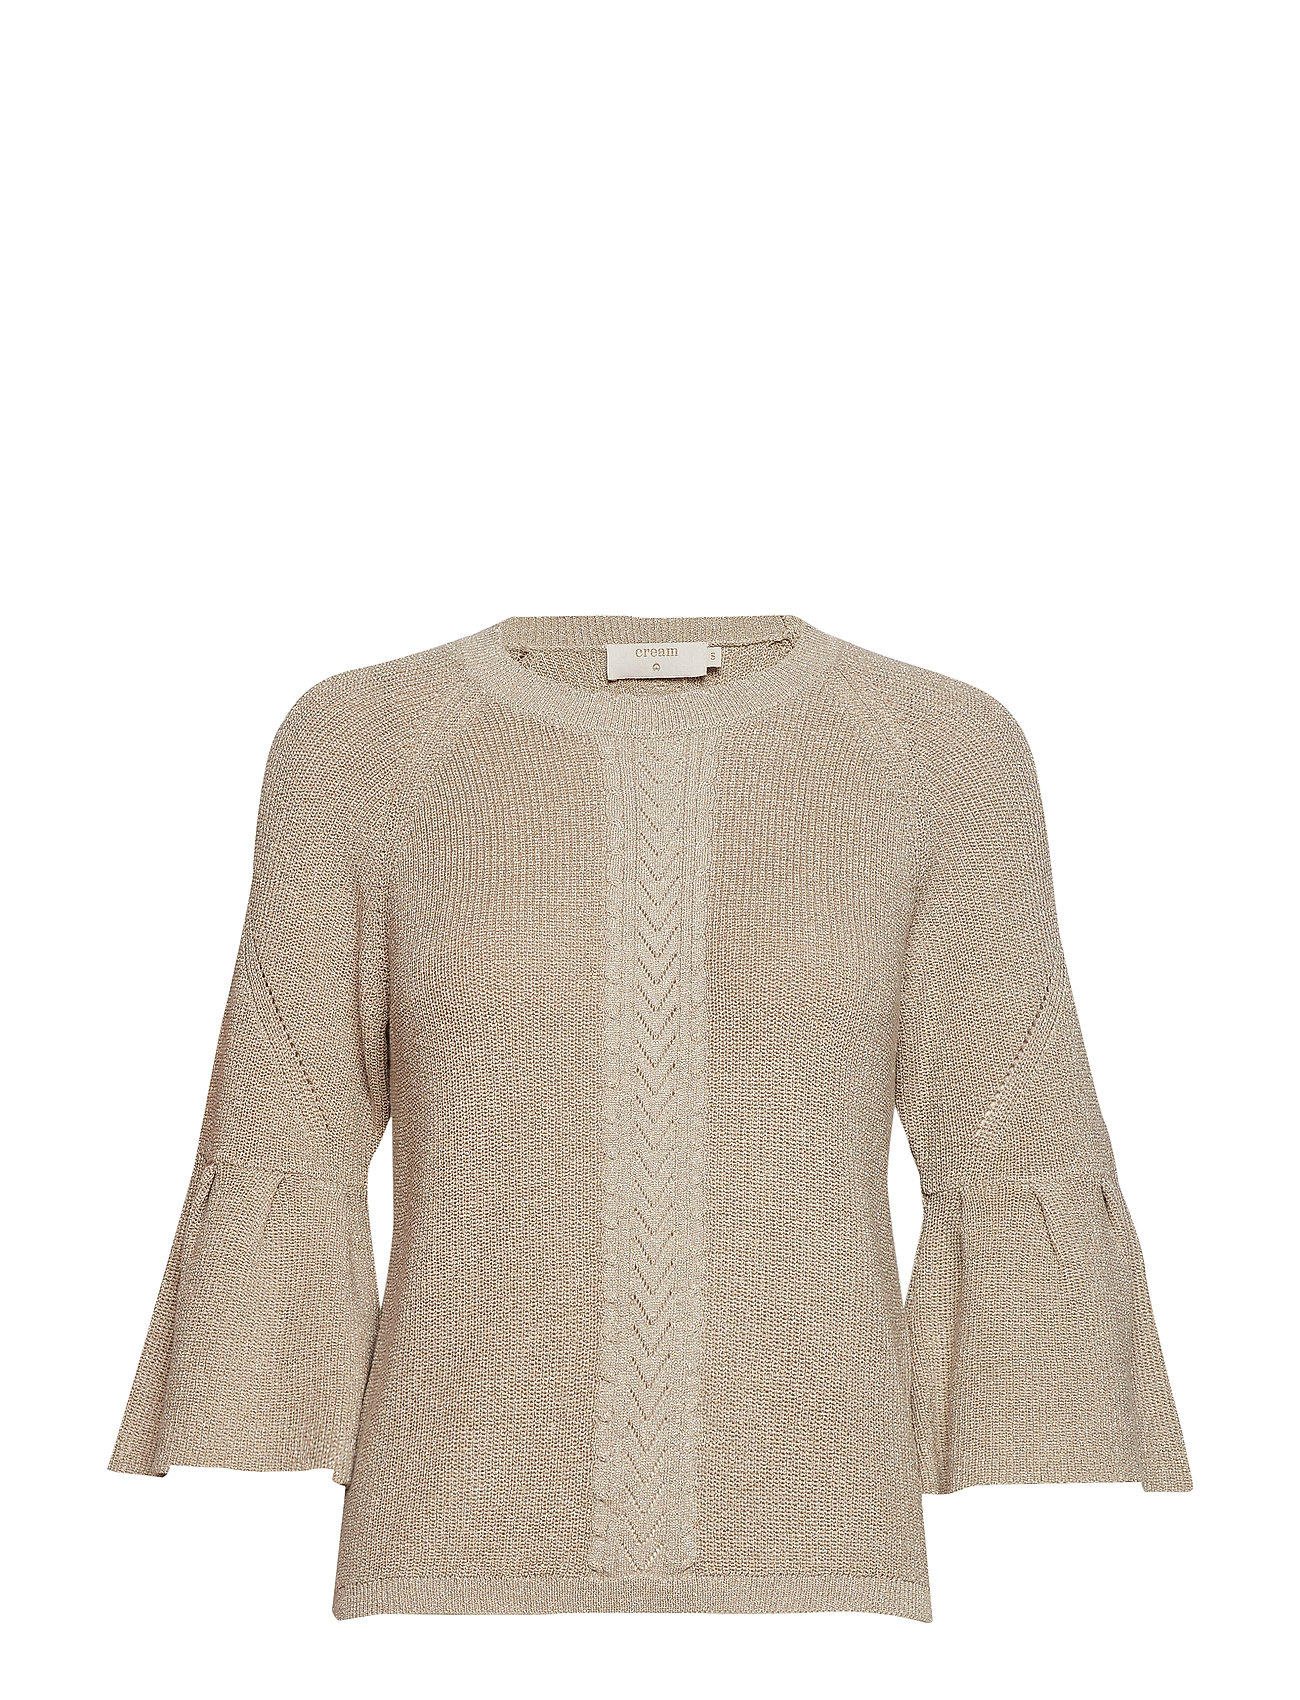 Cream Felice Knit pullover - WARM SAND